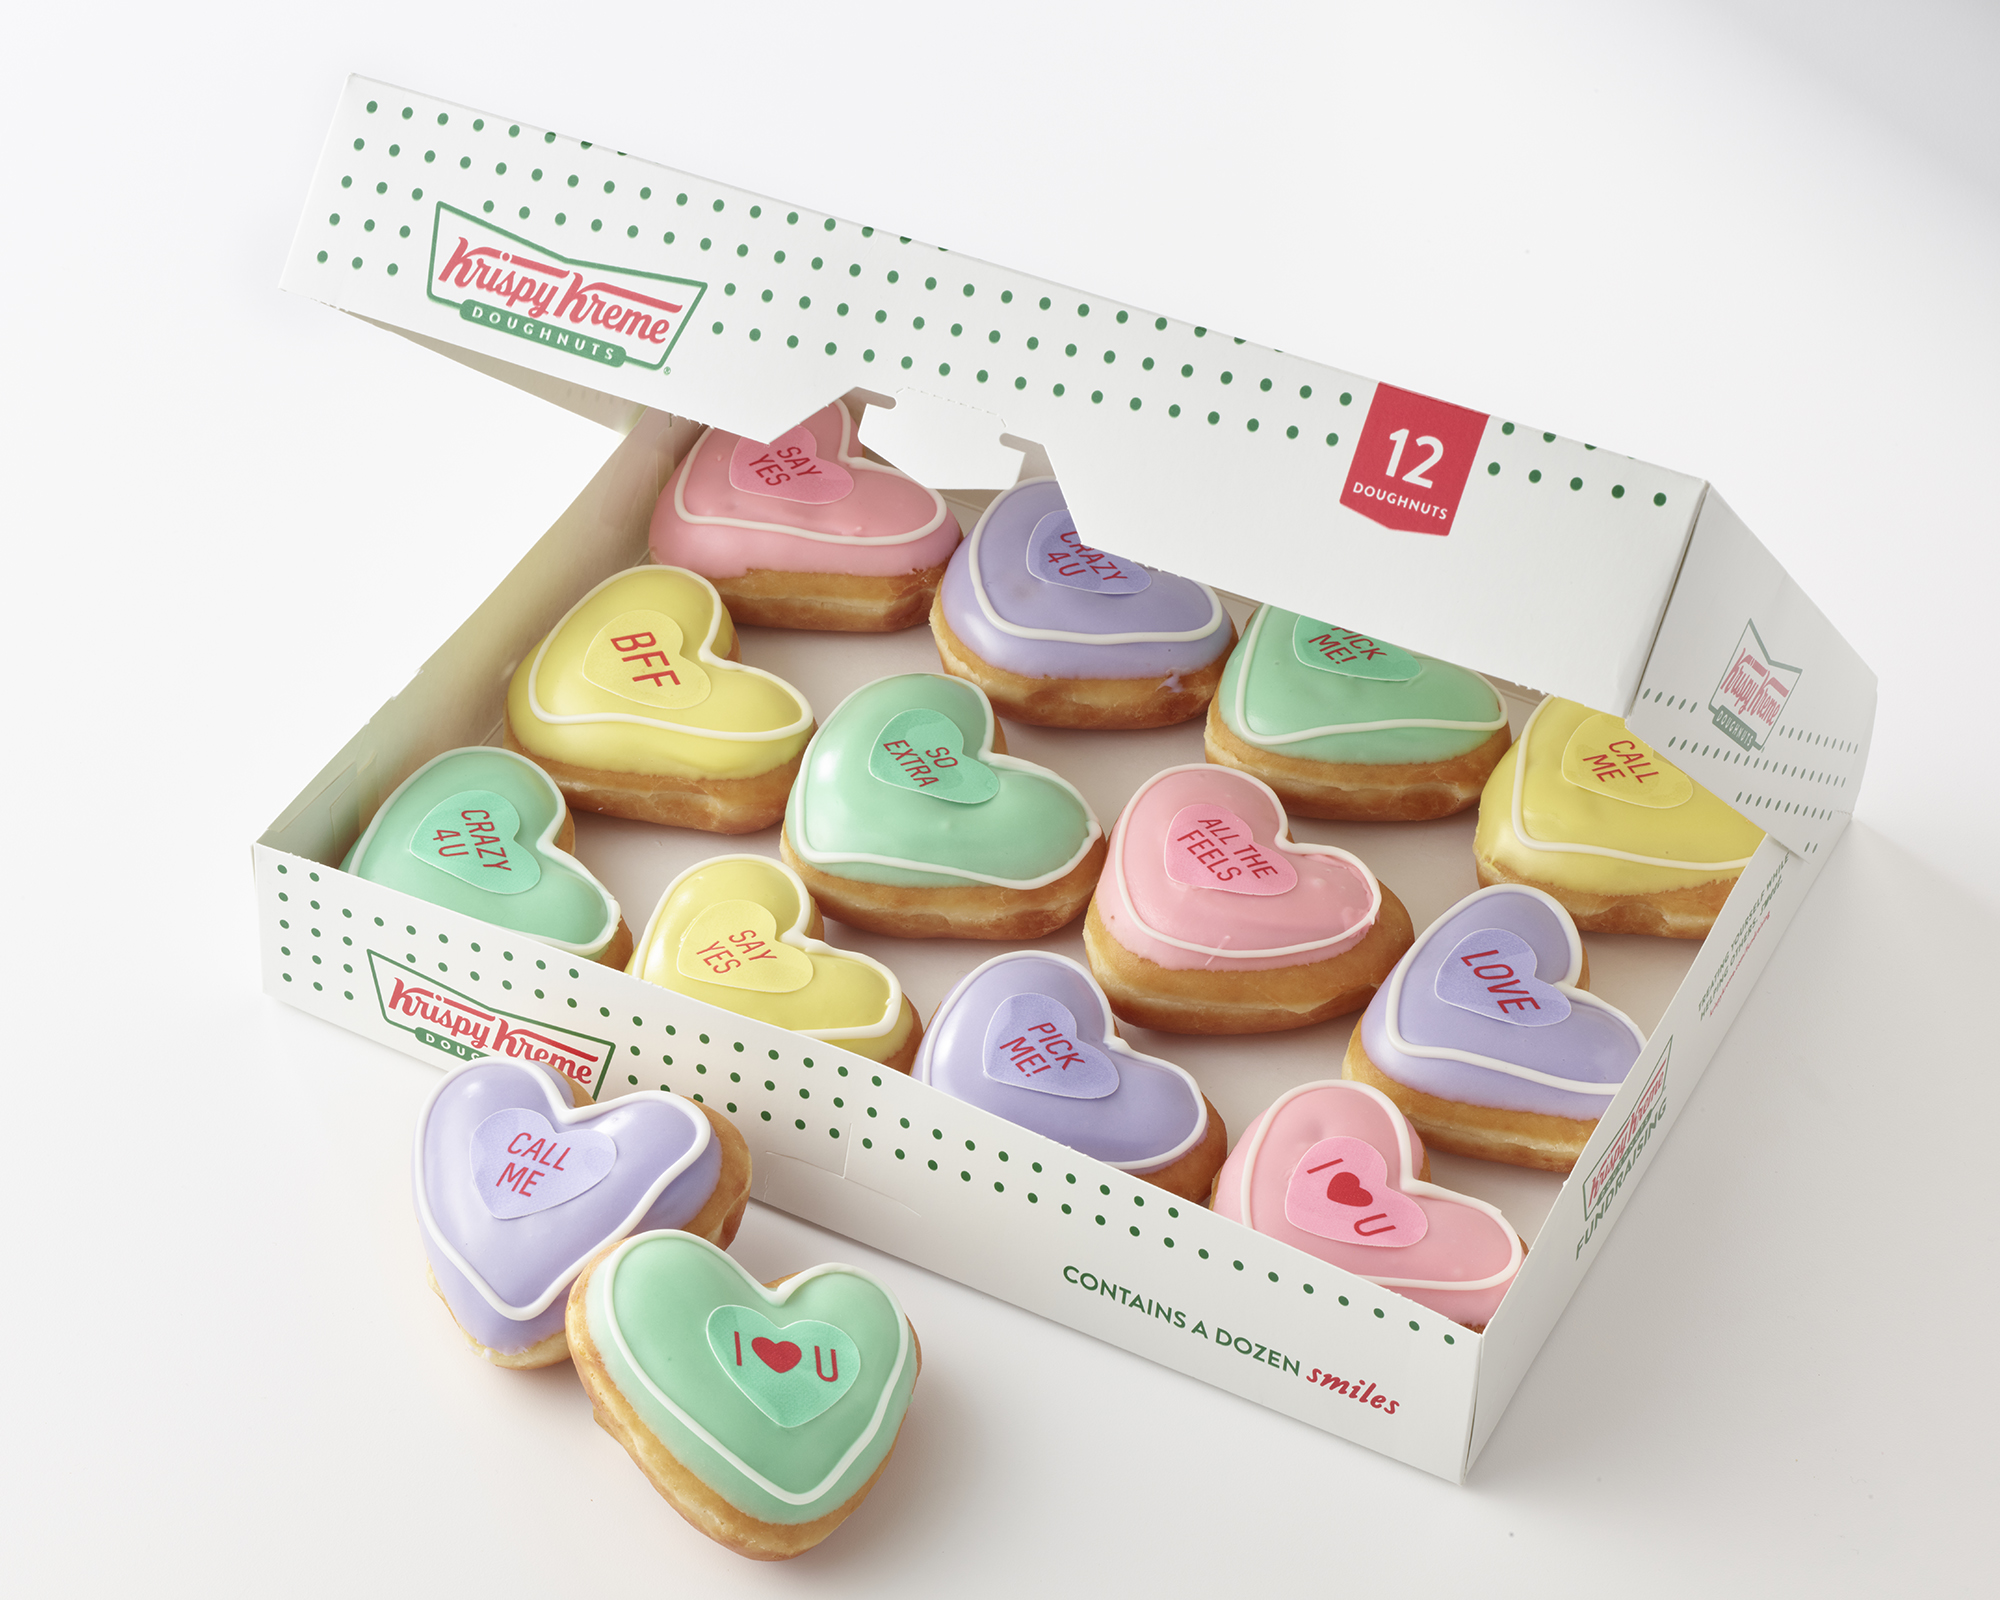 Krispy Kreme's Newest Doughnuts Are Giant Conversation Hearts, Basically